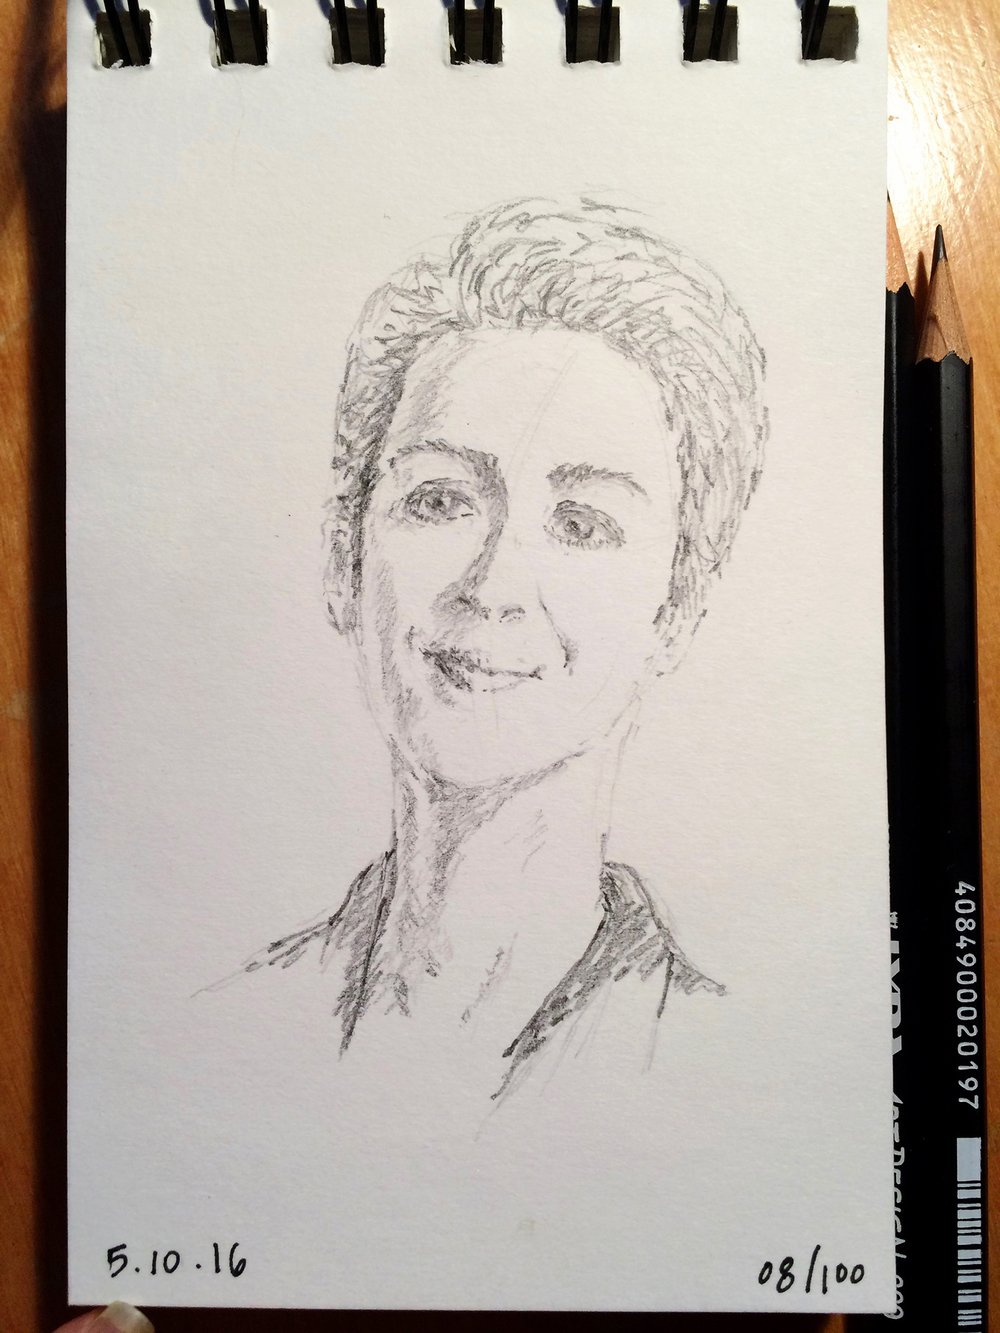 pencil sketch, almost Rachel Maddow, by Jennifer Koskinen